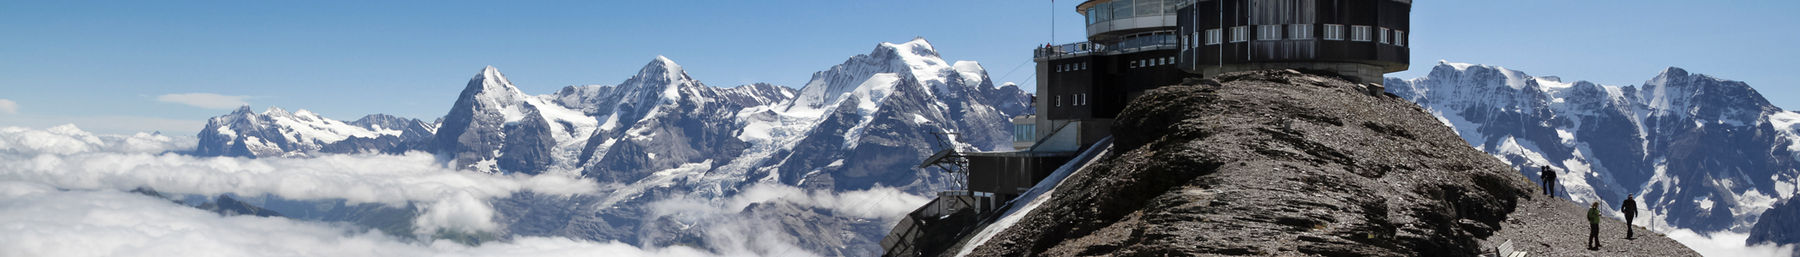 Bernese highlands banner View towrds Schilthorn.jpg